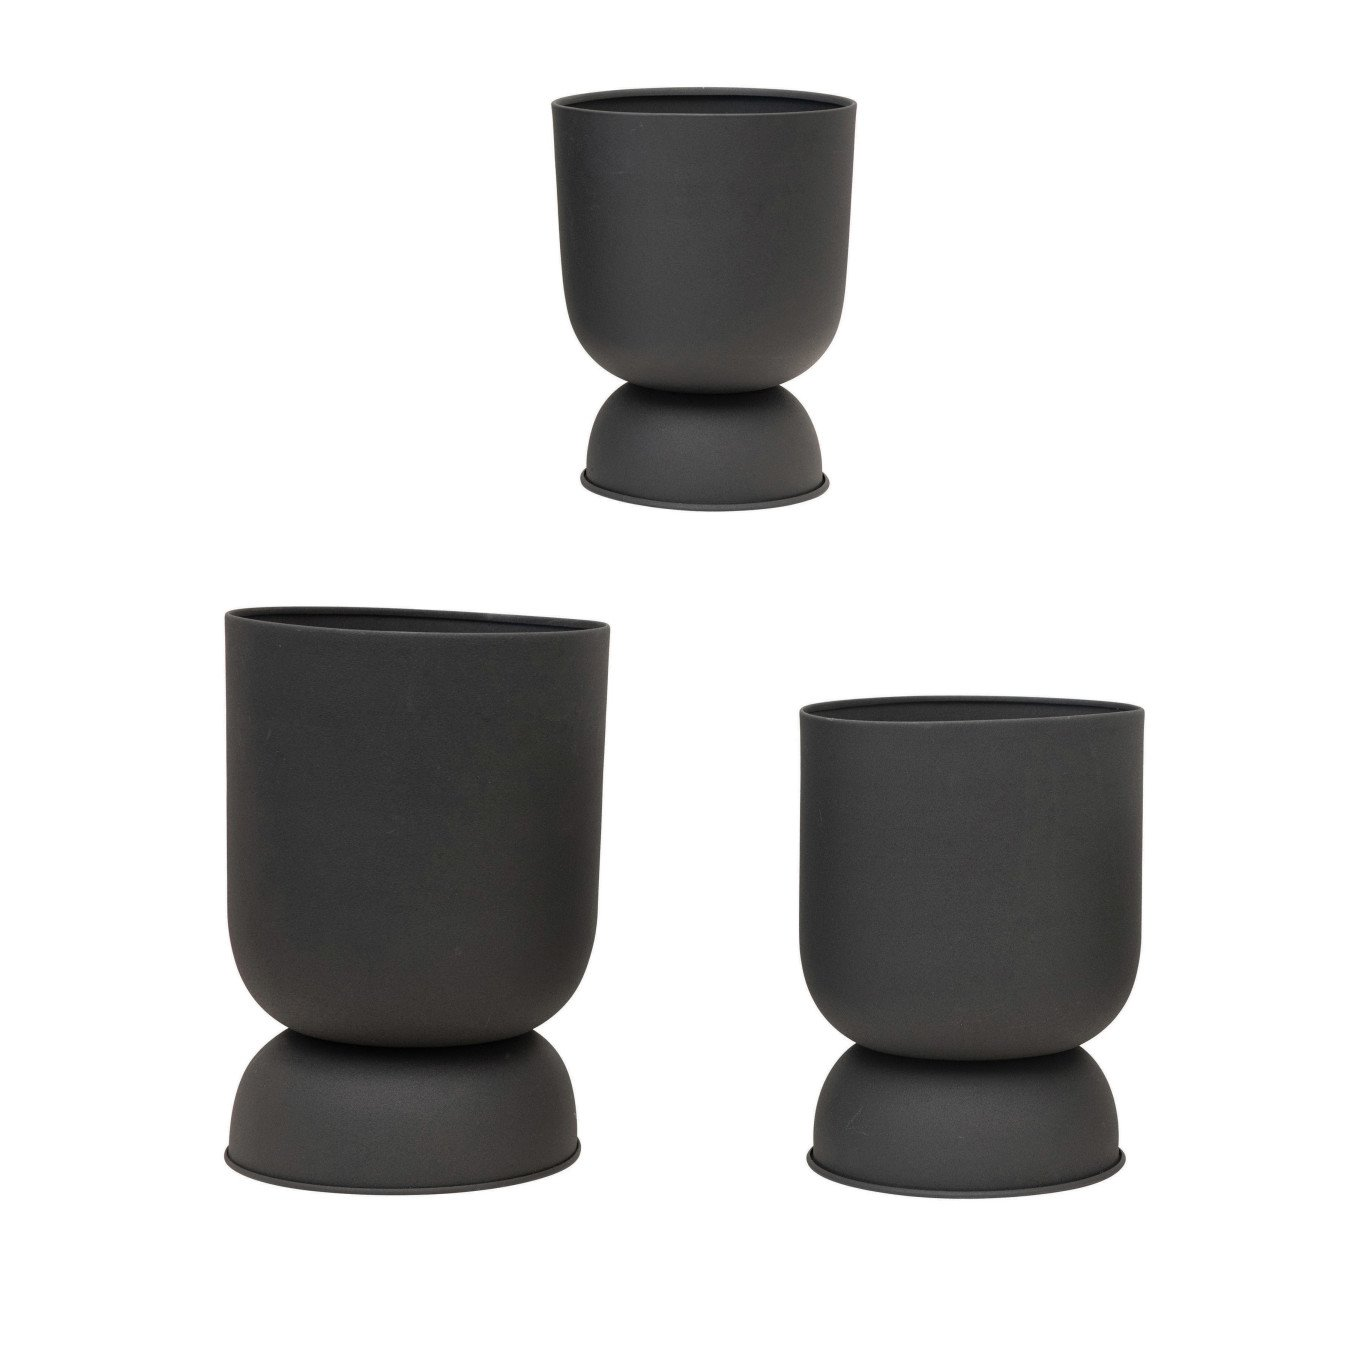 """Textured Metal Footed Planters, Black Finish, Set of 3 (Holds 9"""", 8"""" & 7"""" Pots)"""